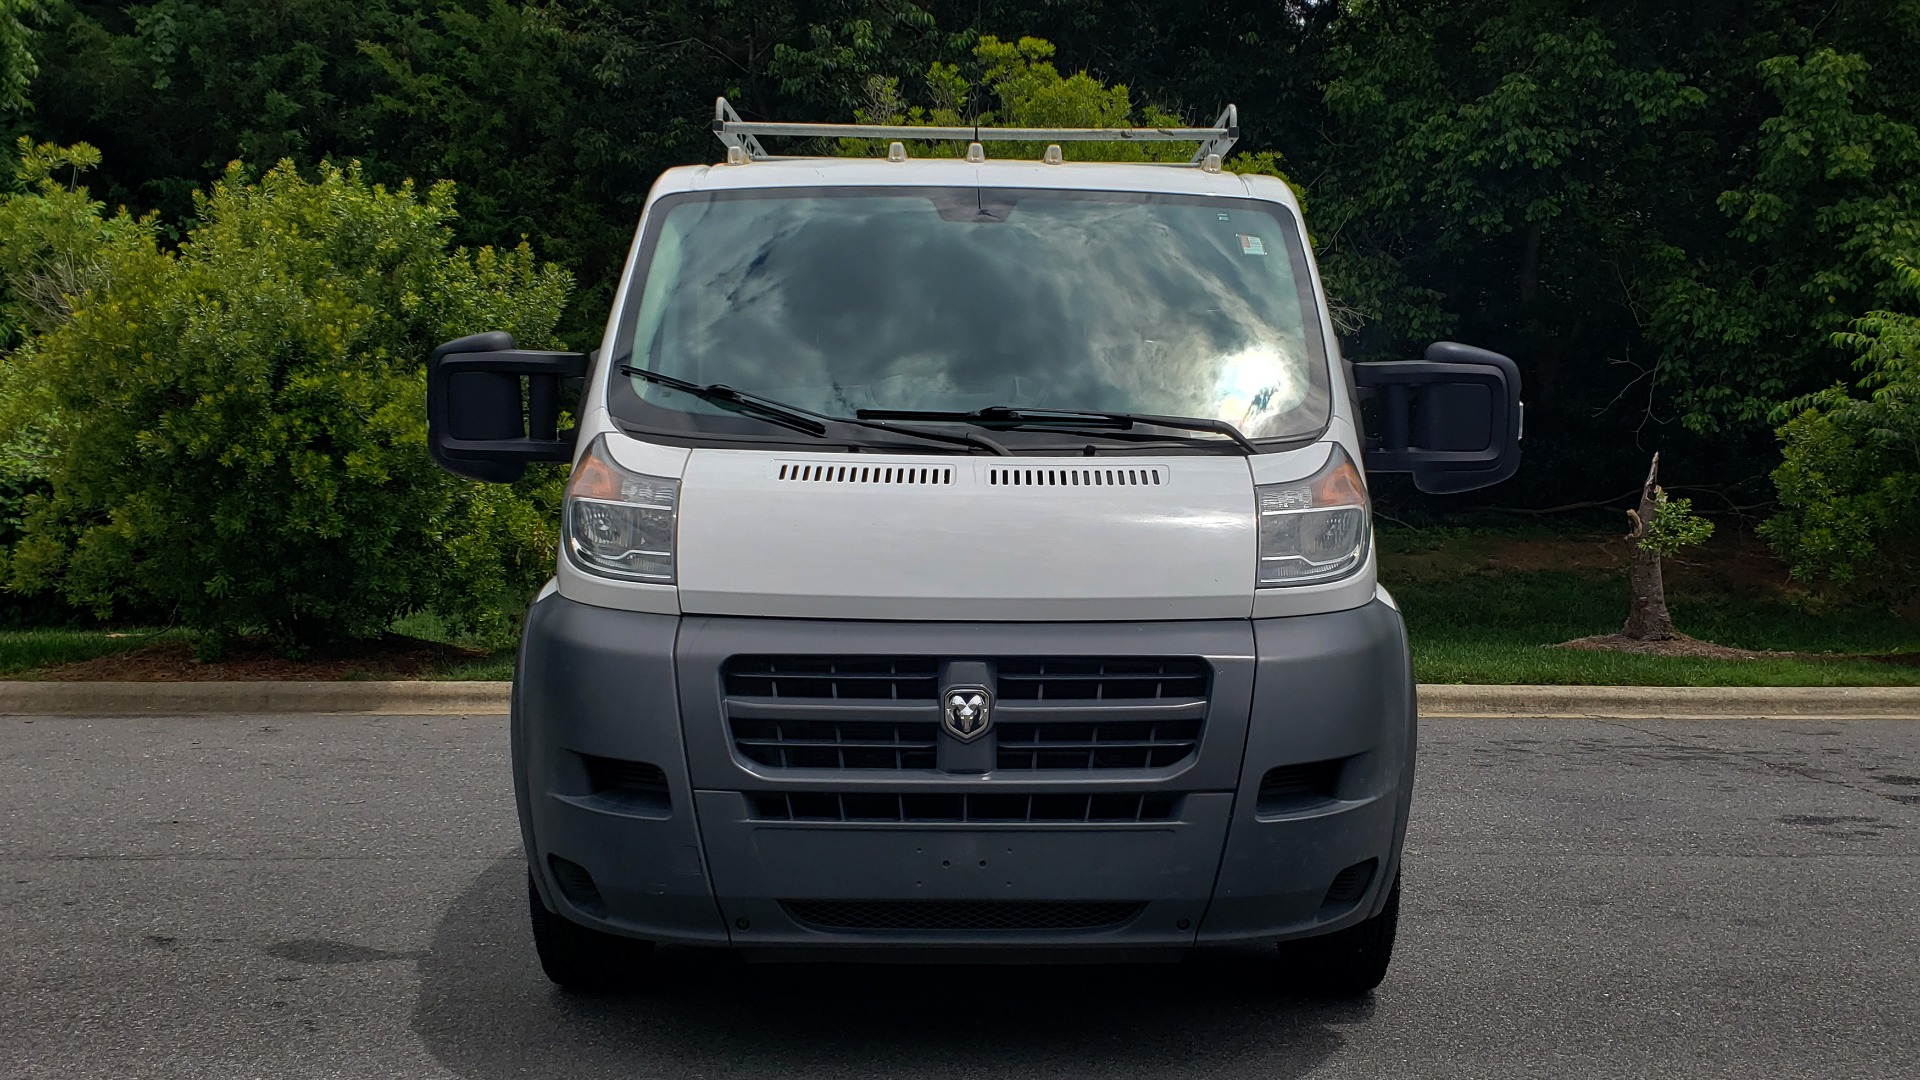 Used 2016 Ram PROMASTER CARGO VAN 136 WB / 3.6L V6 / AUTO / ROOF-RACK / REARVIEW / SEATS 5 for sale $15,995 at Formula Imports in Charlotte NC 28227 23